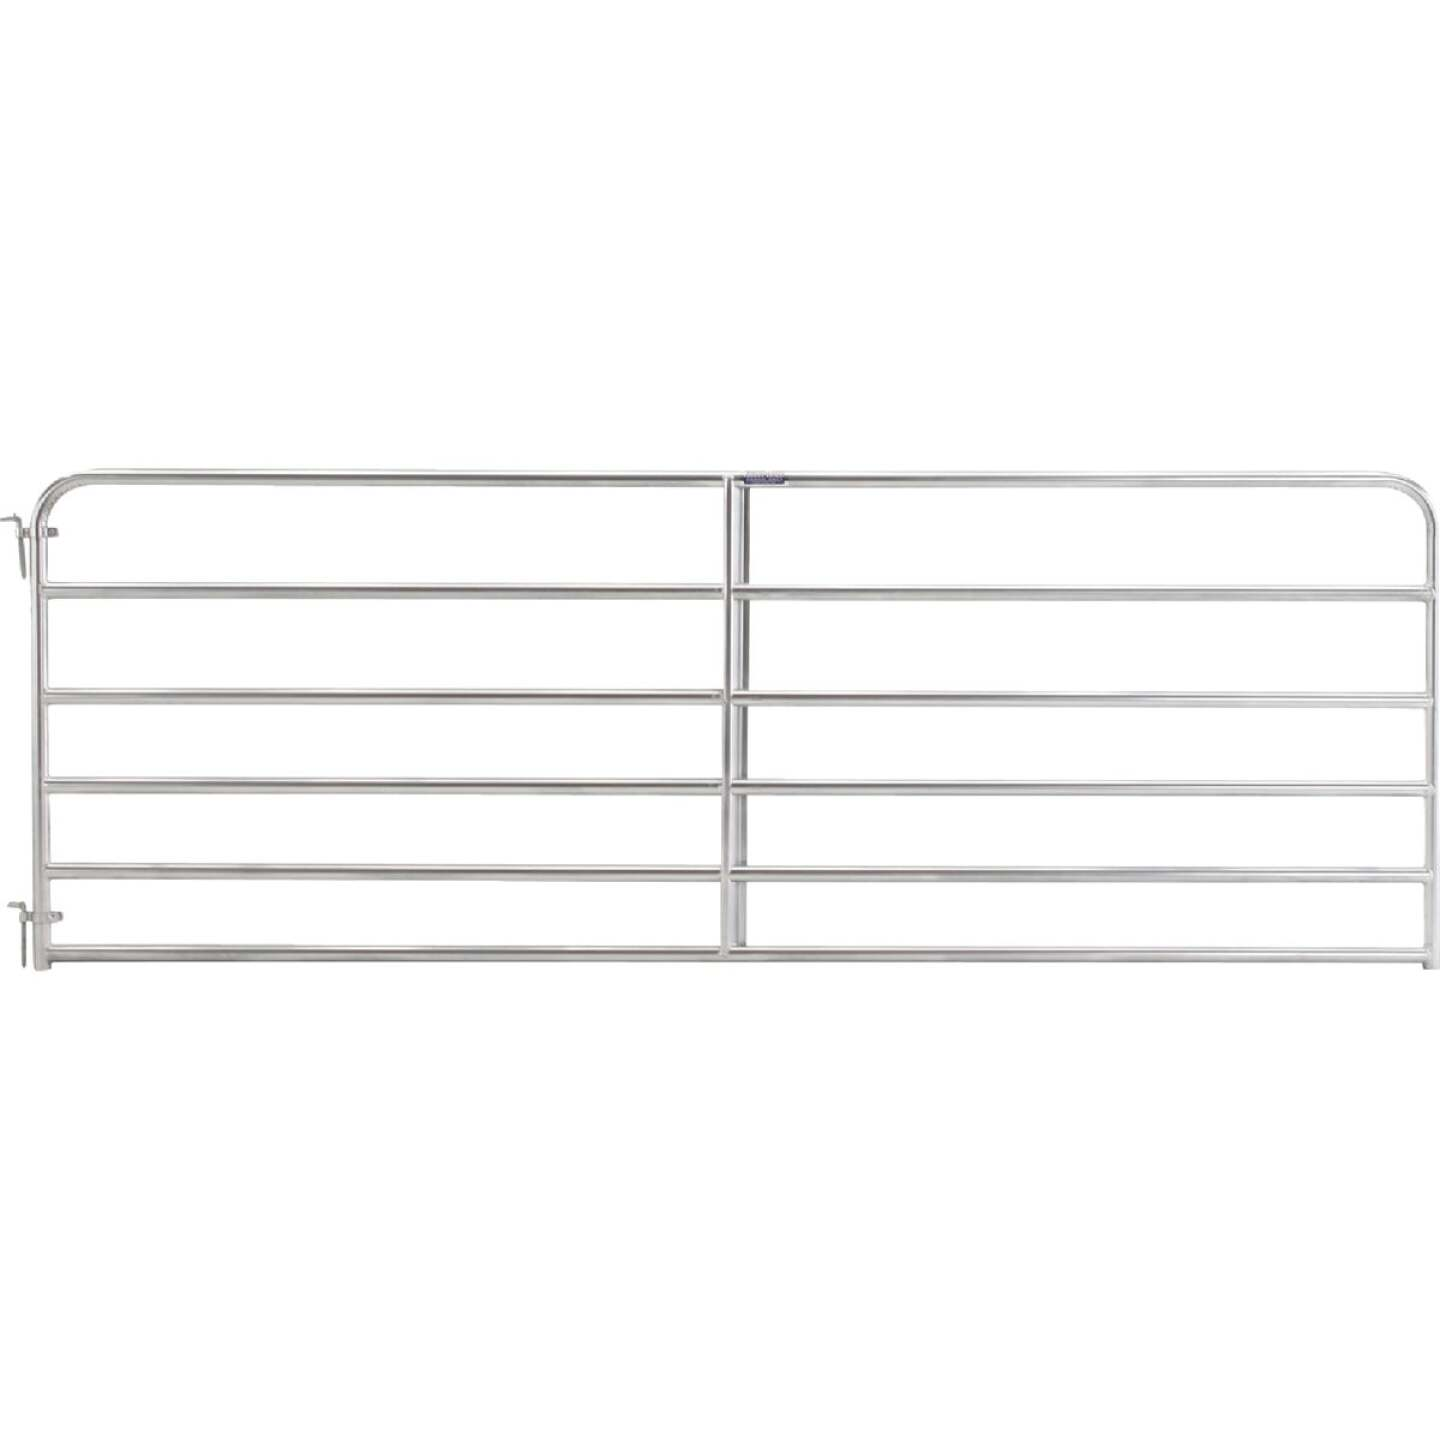 Tarter 50 In. H. x 12 Ft. L. x 1-3/4 In. Tube Diameter Galvanized Tube Gate Image 1